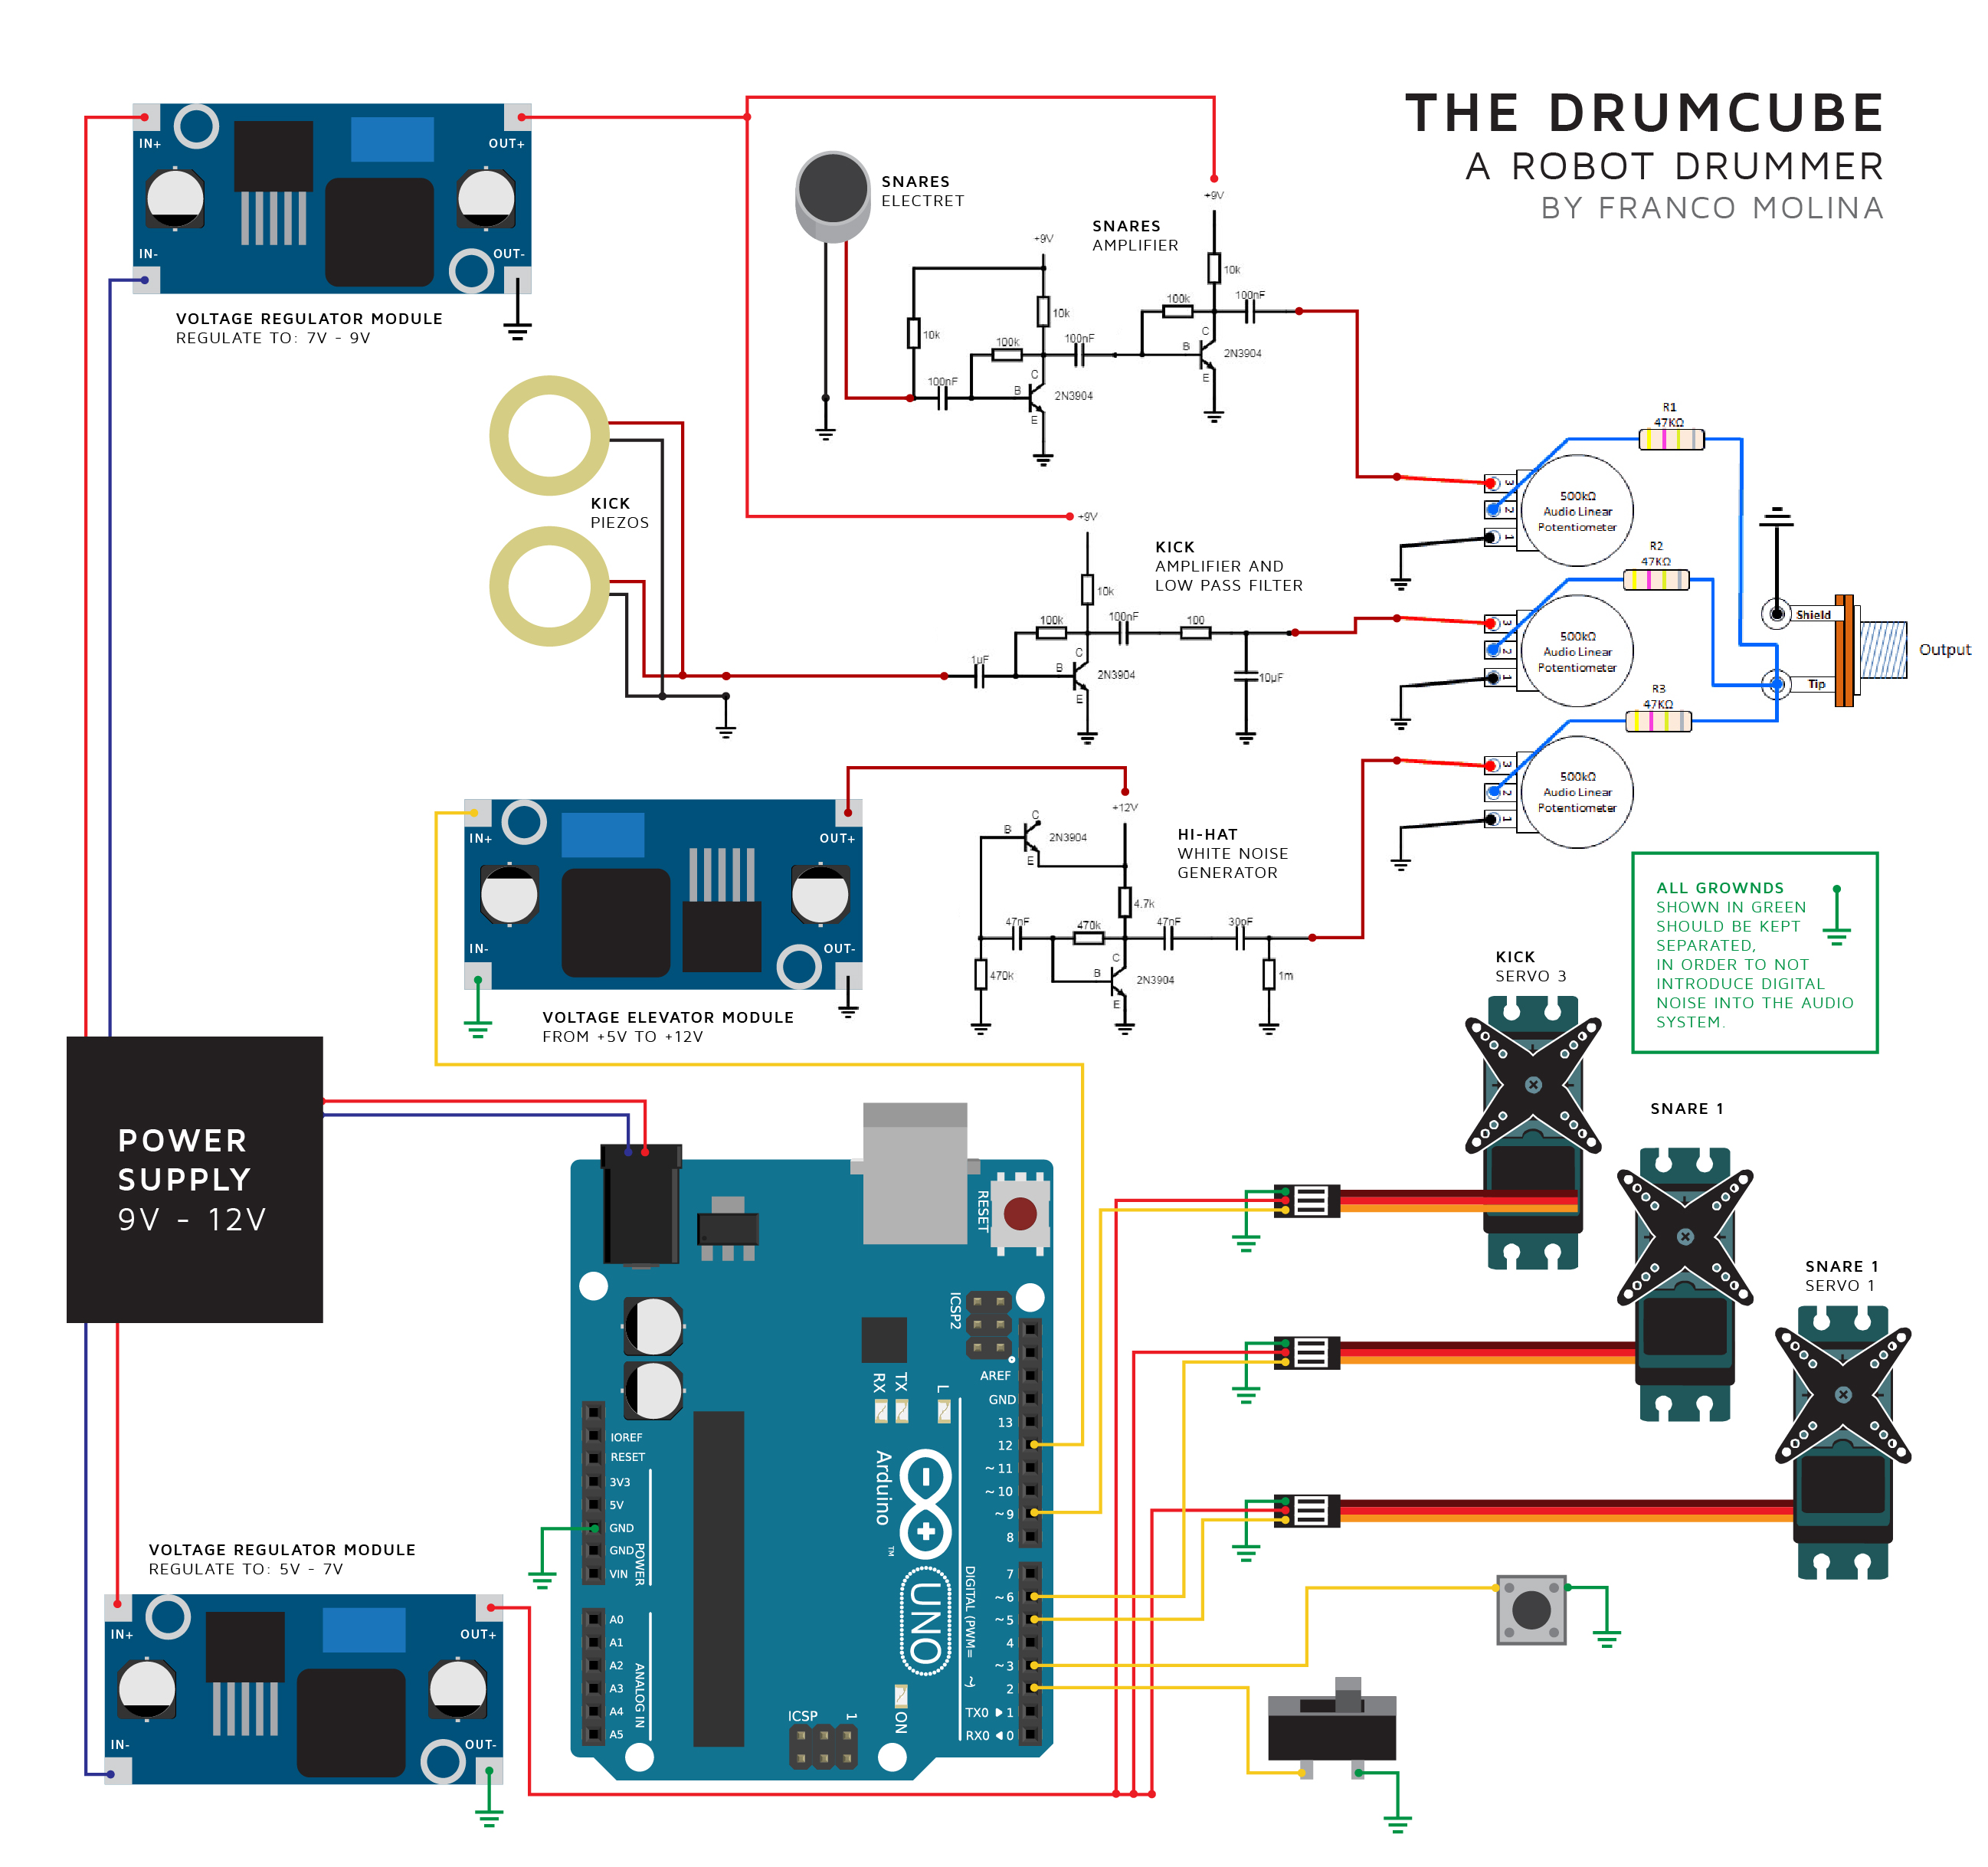 hight resolution of power the electret mic through arduino uno as shown in circuit diagram wiring diagram blog